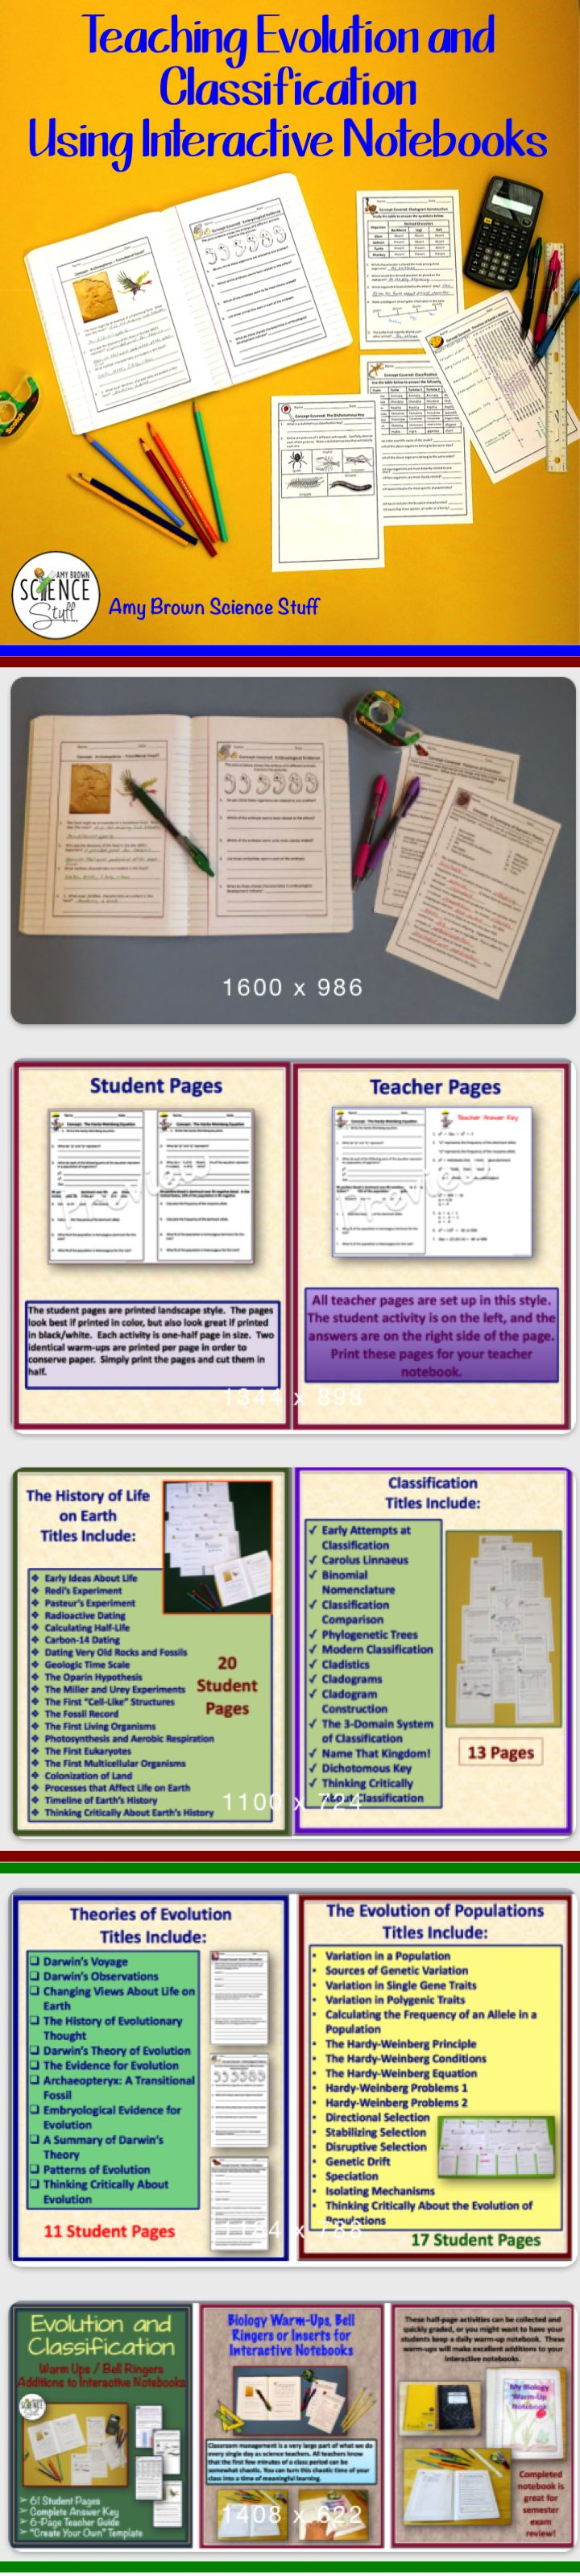 Blog post from Science Stuff.  You can make your lessons on evolution and classification really snap by including these interactive notebook pages into your classroom routine.  Use as warm ups, bell ringers or fantastic homework assignments.  Topics include Darwin, natural selection, the evolution of populations, Hardy Weinberg, and classification of organisms.